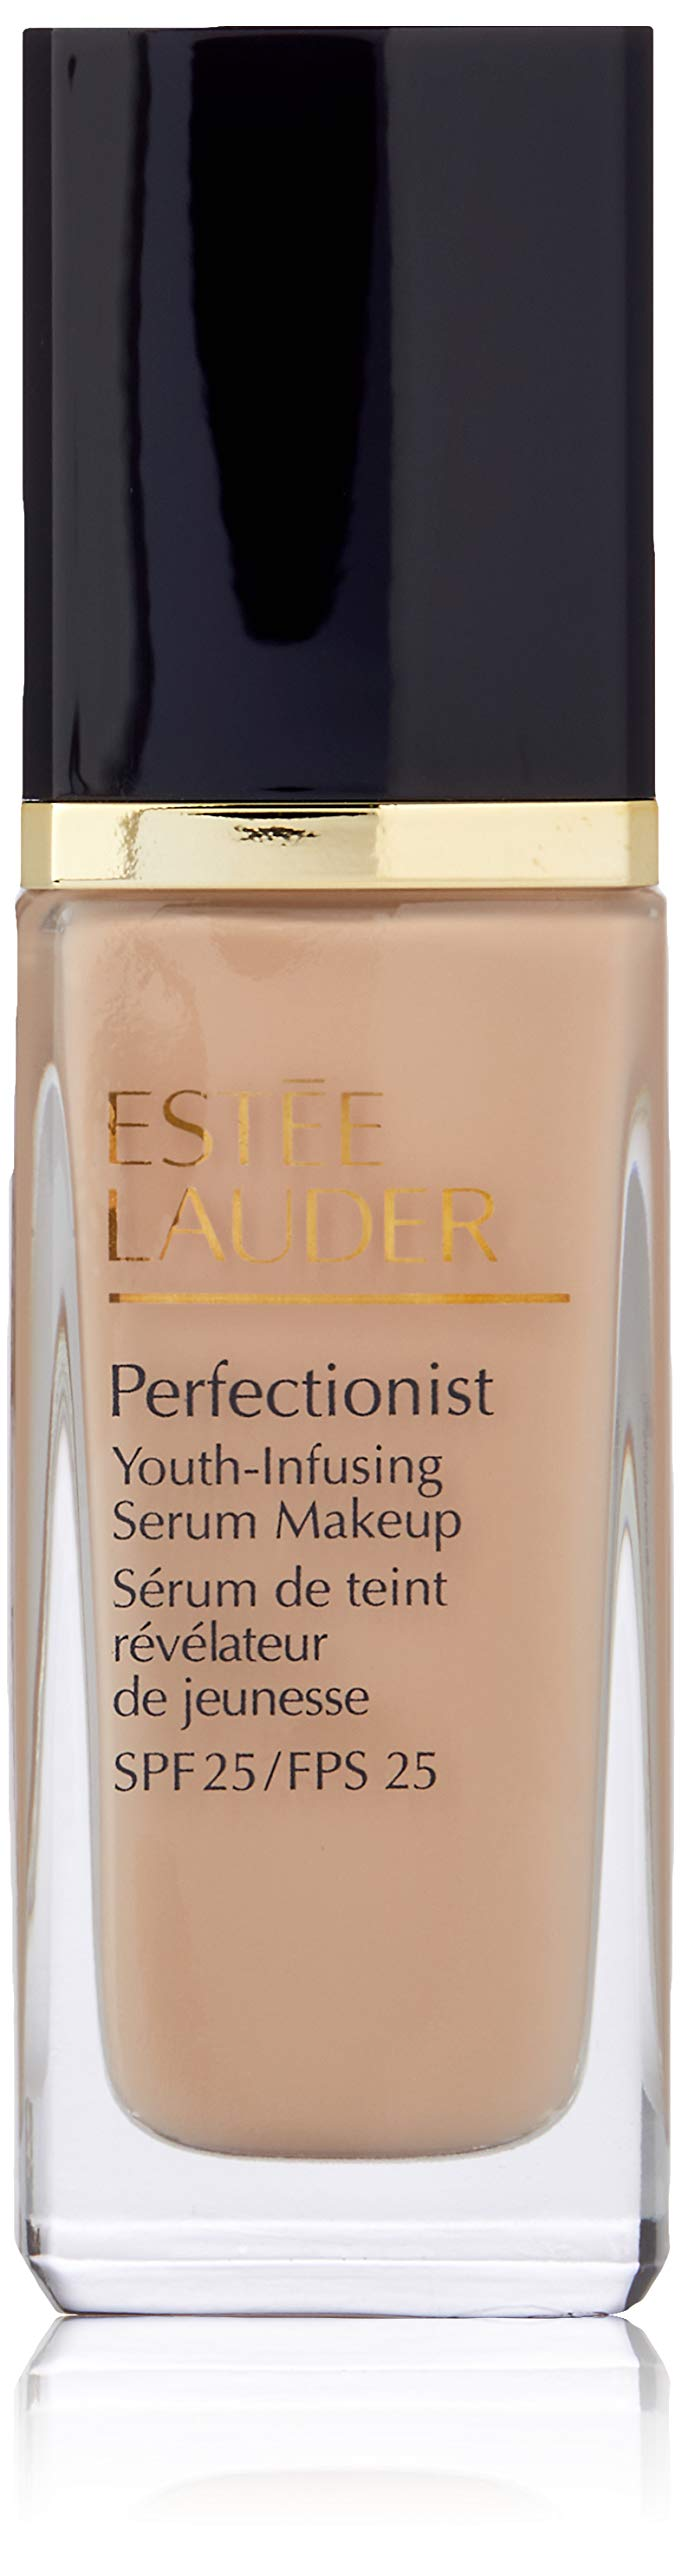 Estee Lauder Perfectionist Youth-Infusing Makeup Spf 25, Fresco, 1 Ounce by Estee Lauder